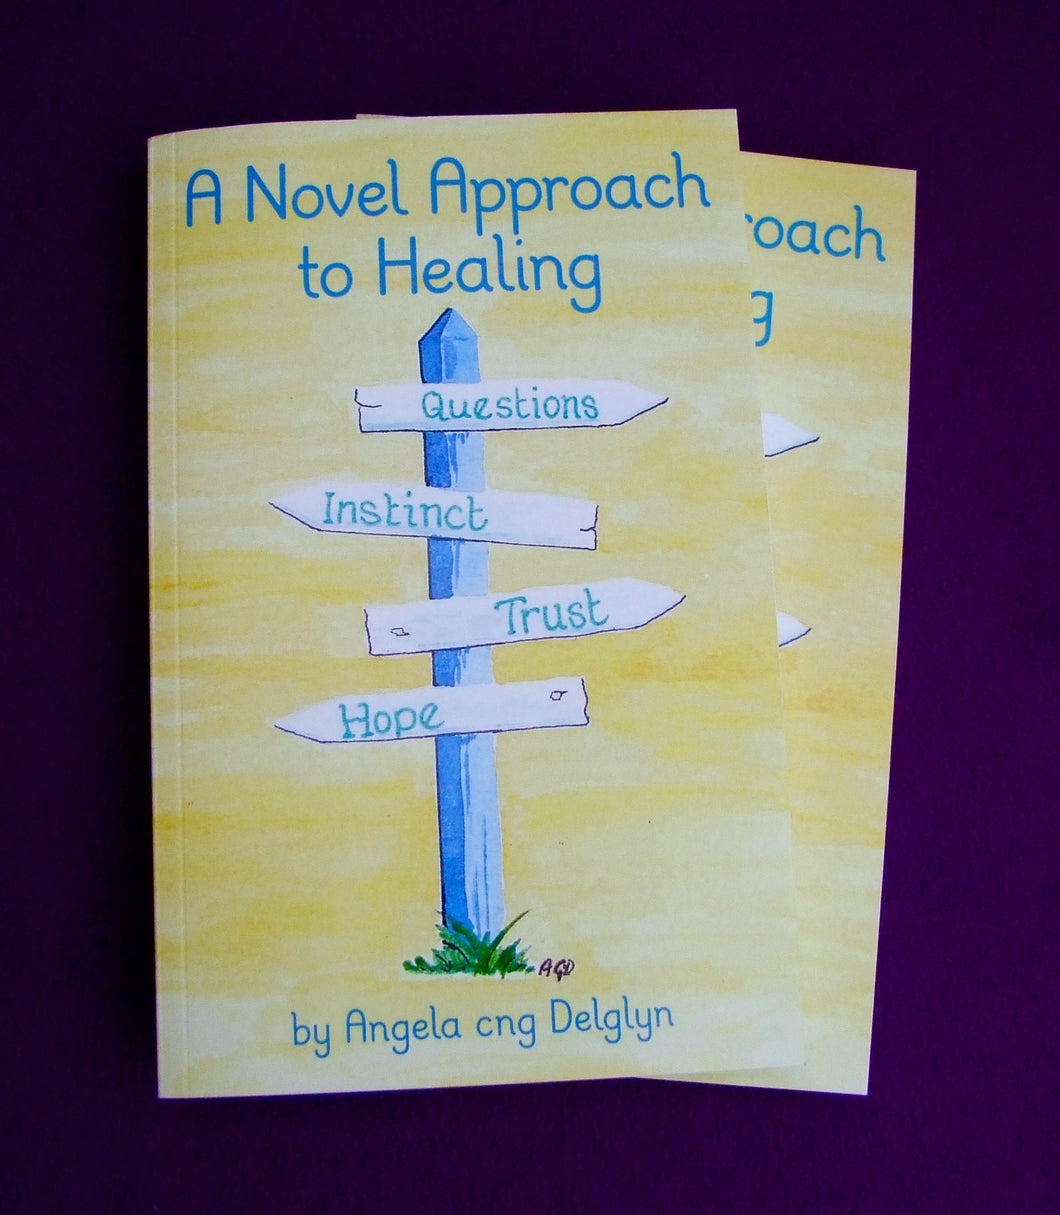 A novel approach to healing, Angela Delglyn, book